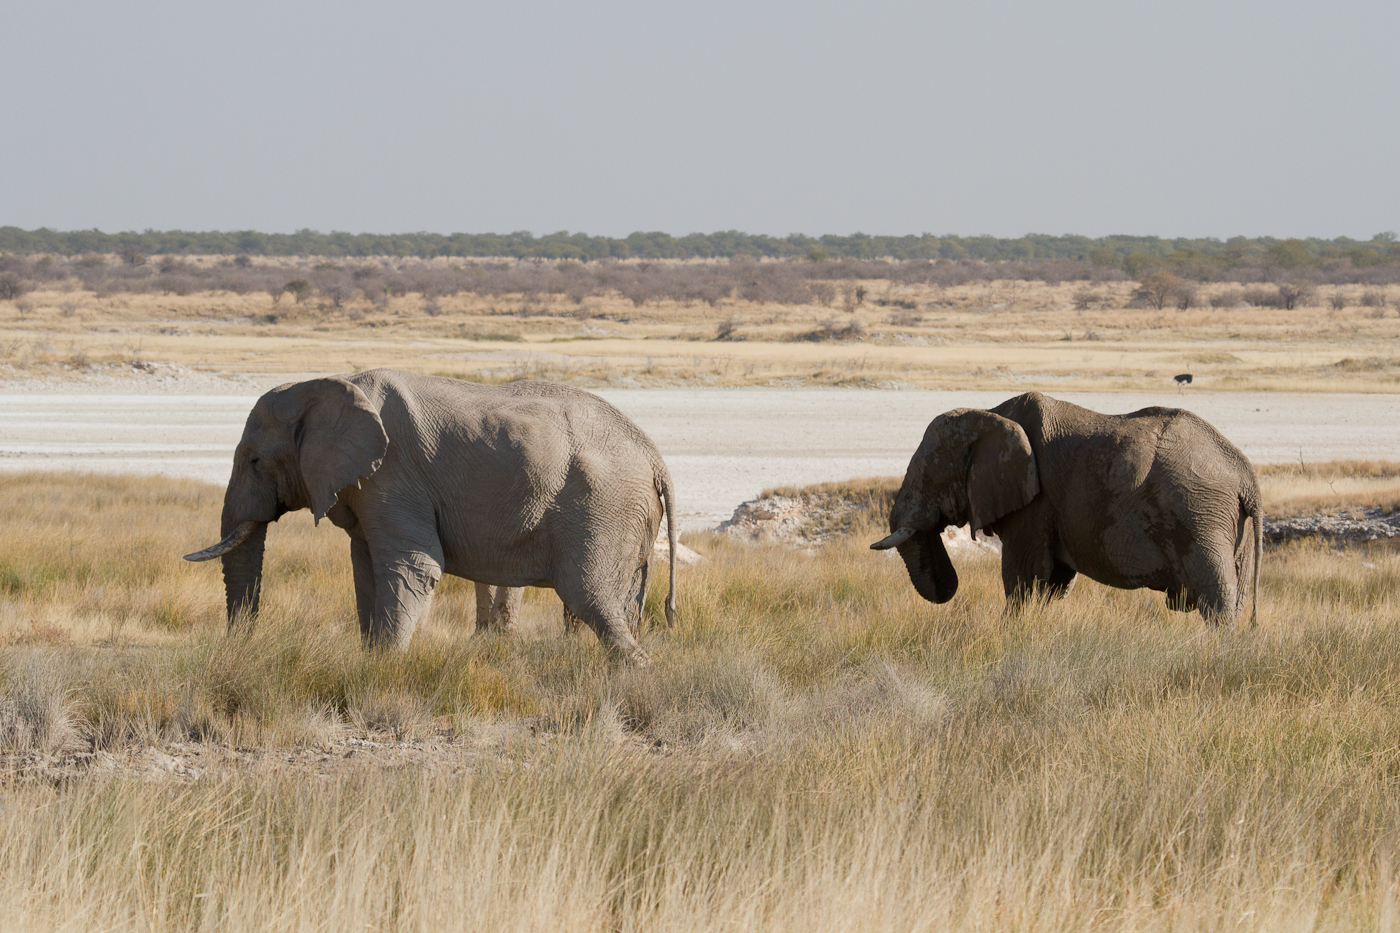 Elephants in Etosha are famed for having longer than average legs and shorter than average tusks.